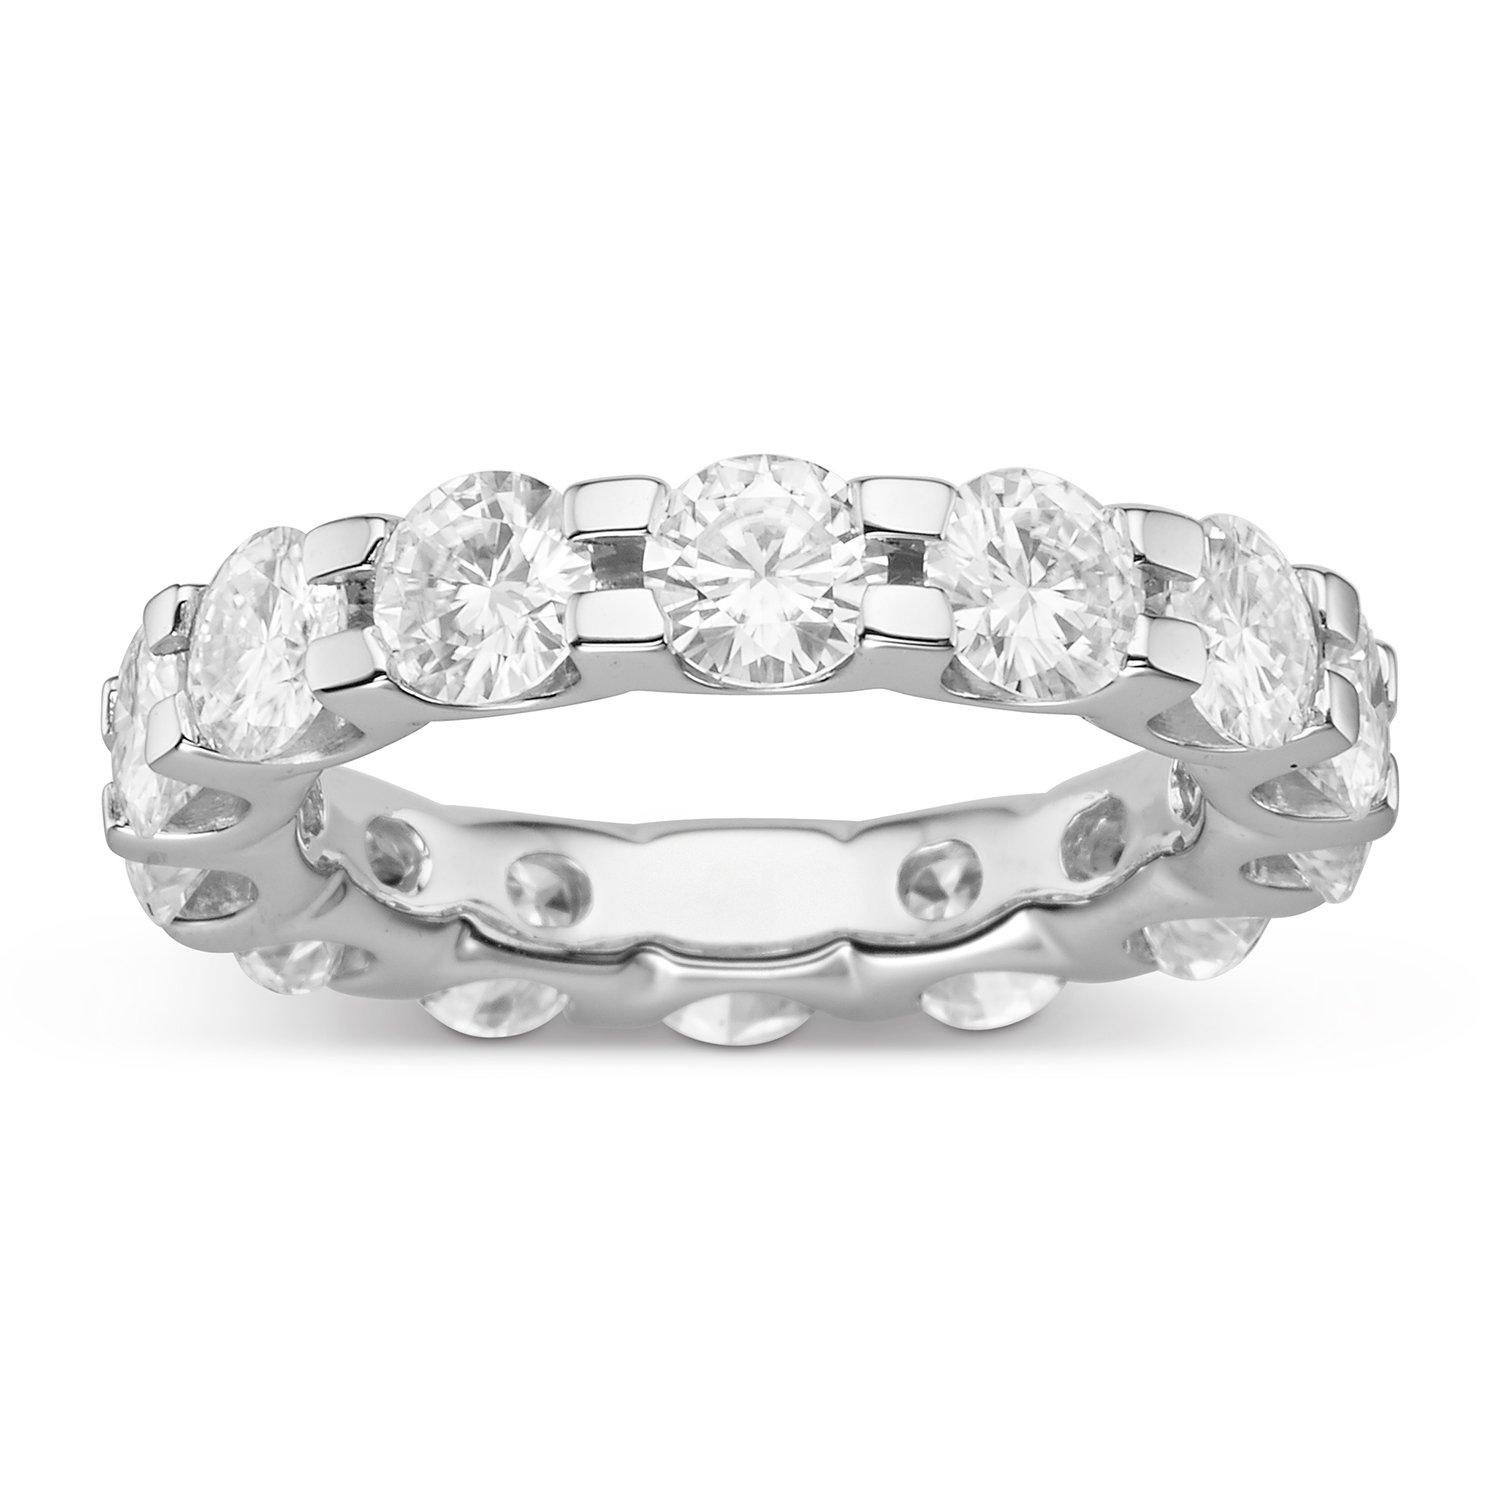 Forever Brilliant Round 4.5mm Moissanite Wedding Band-size 7, 4.62ct DEW by Charles & Colvard